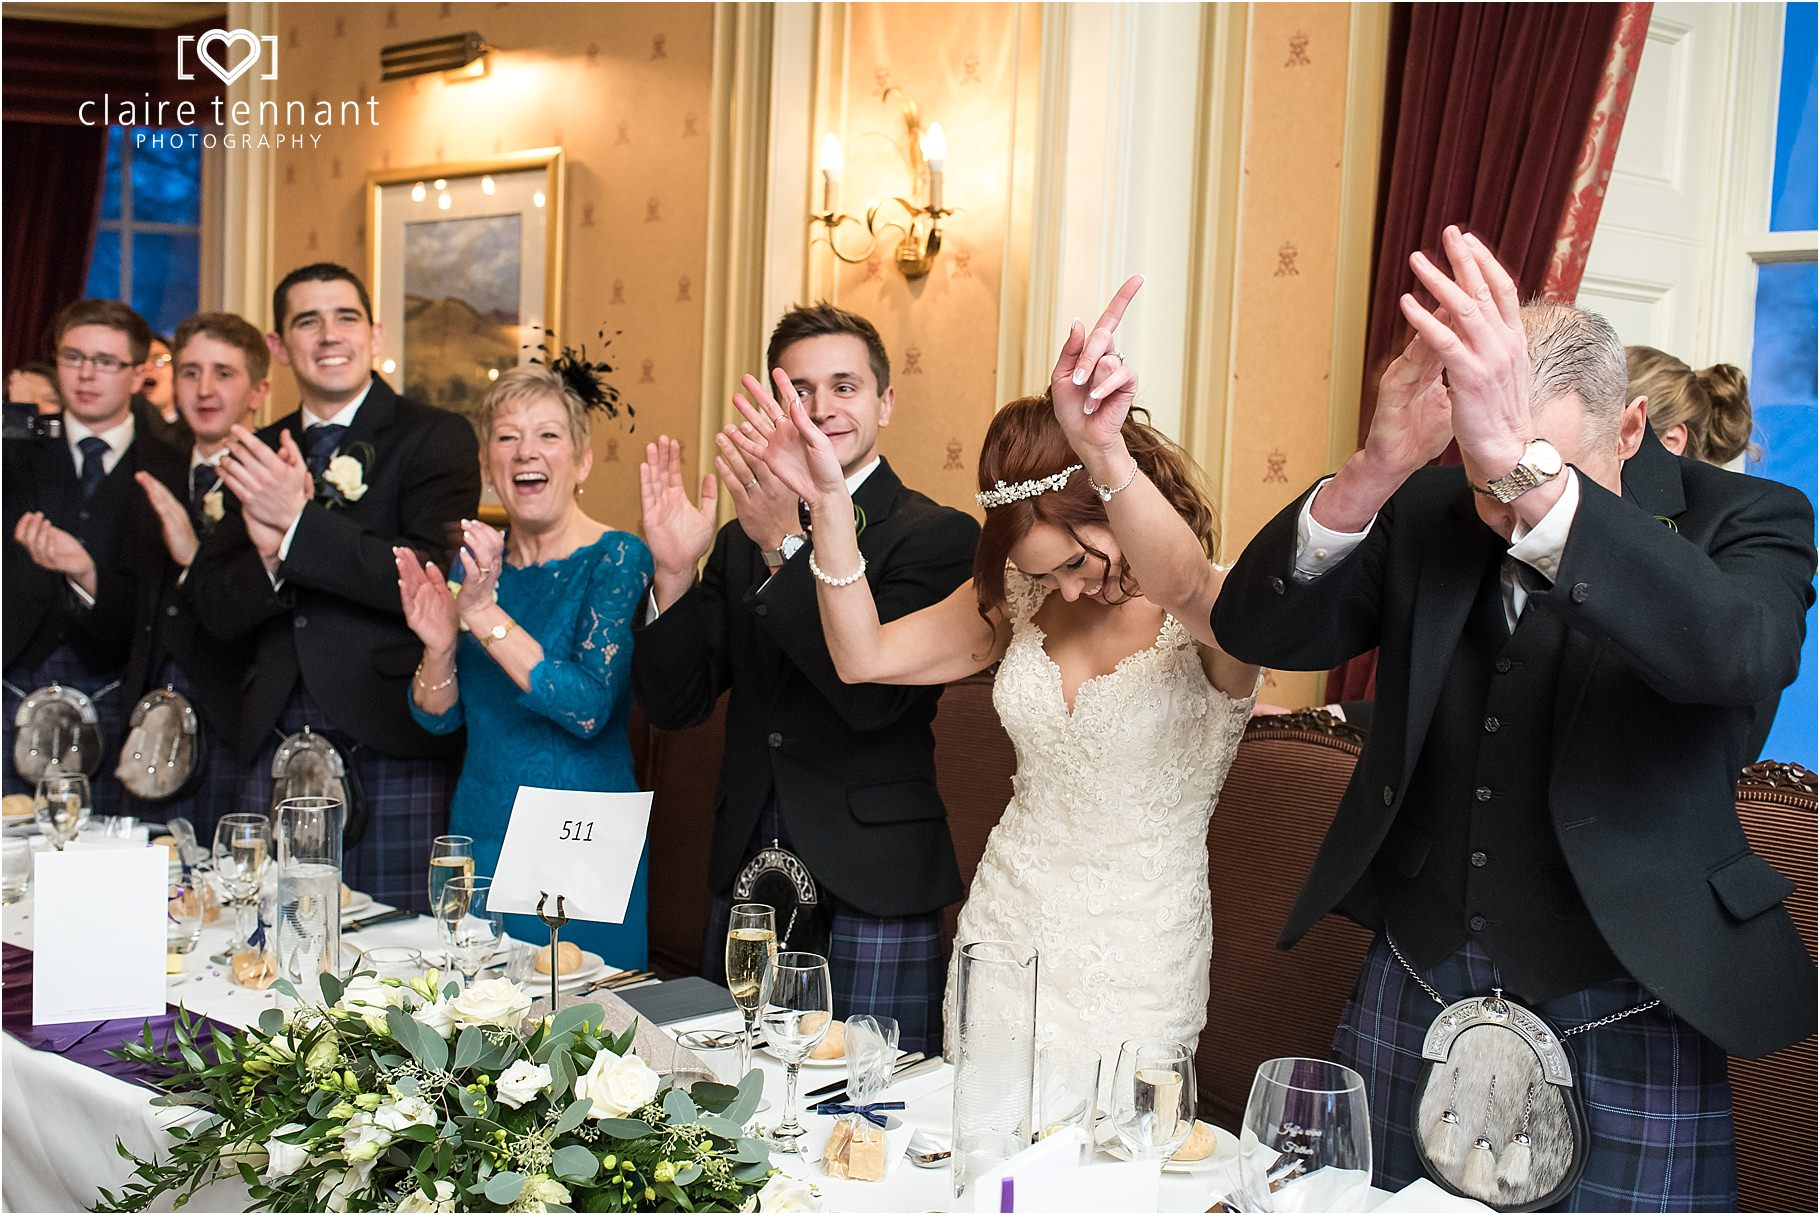 2016 wedding photography highlights Lothians